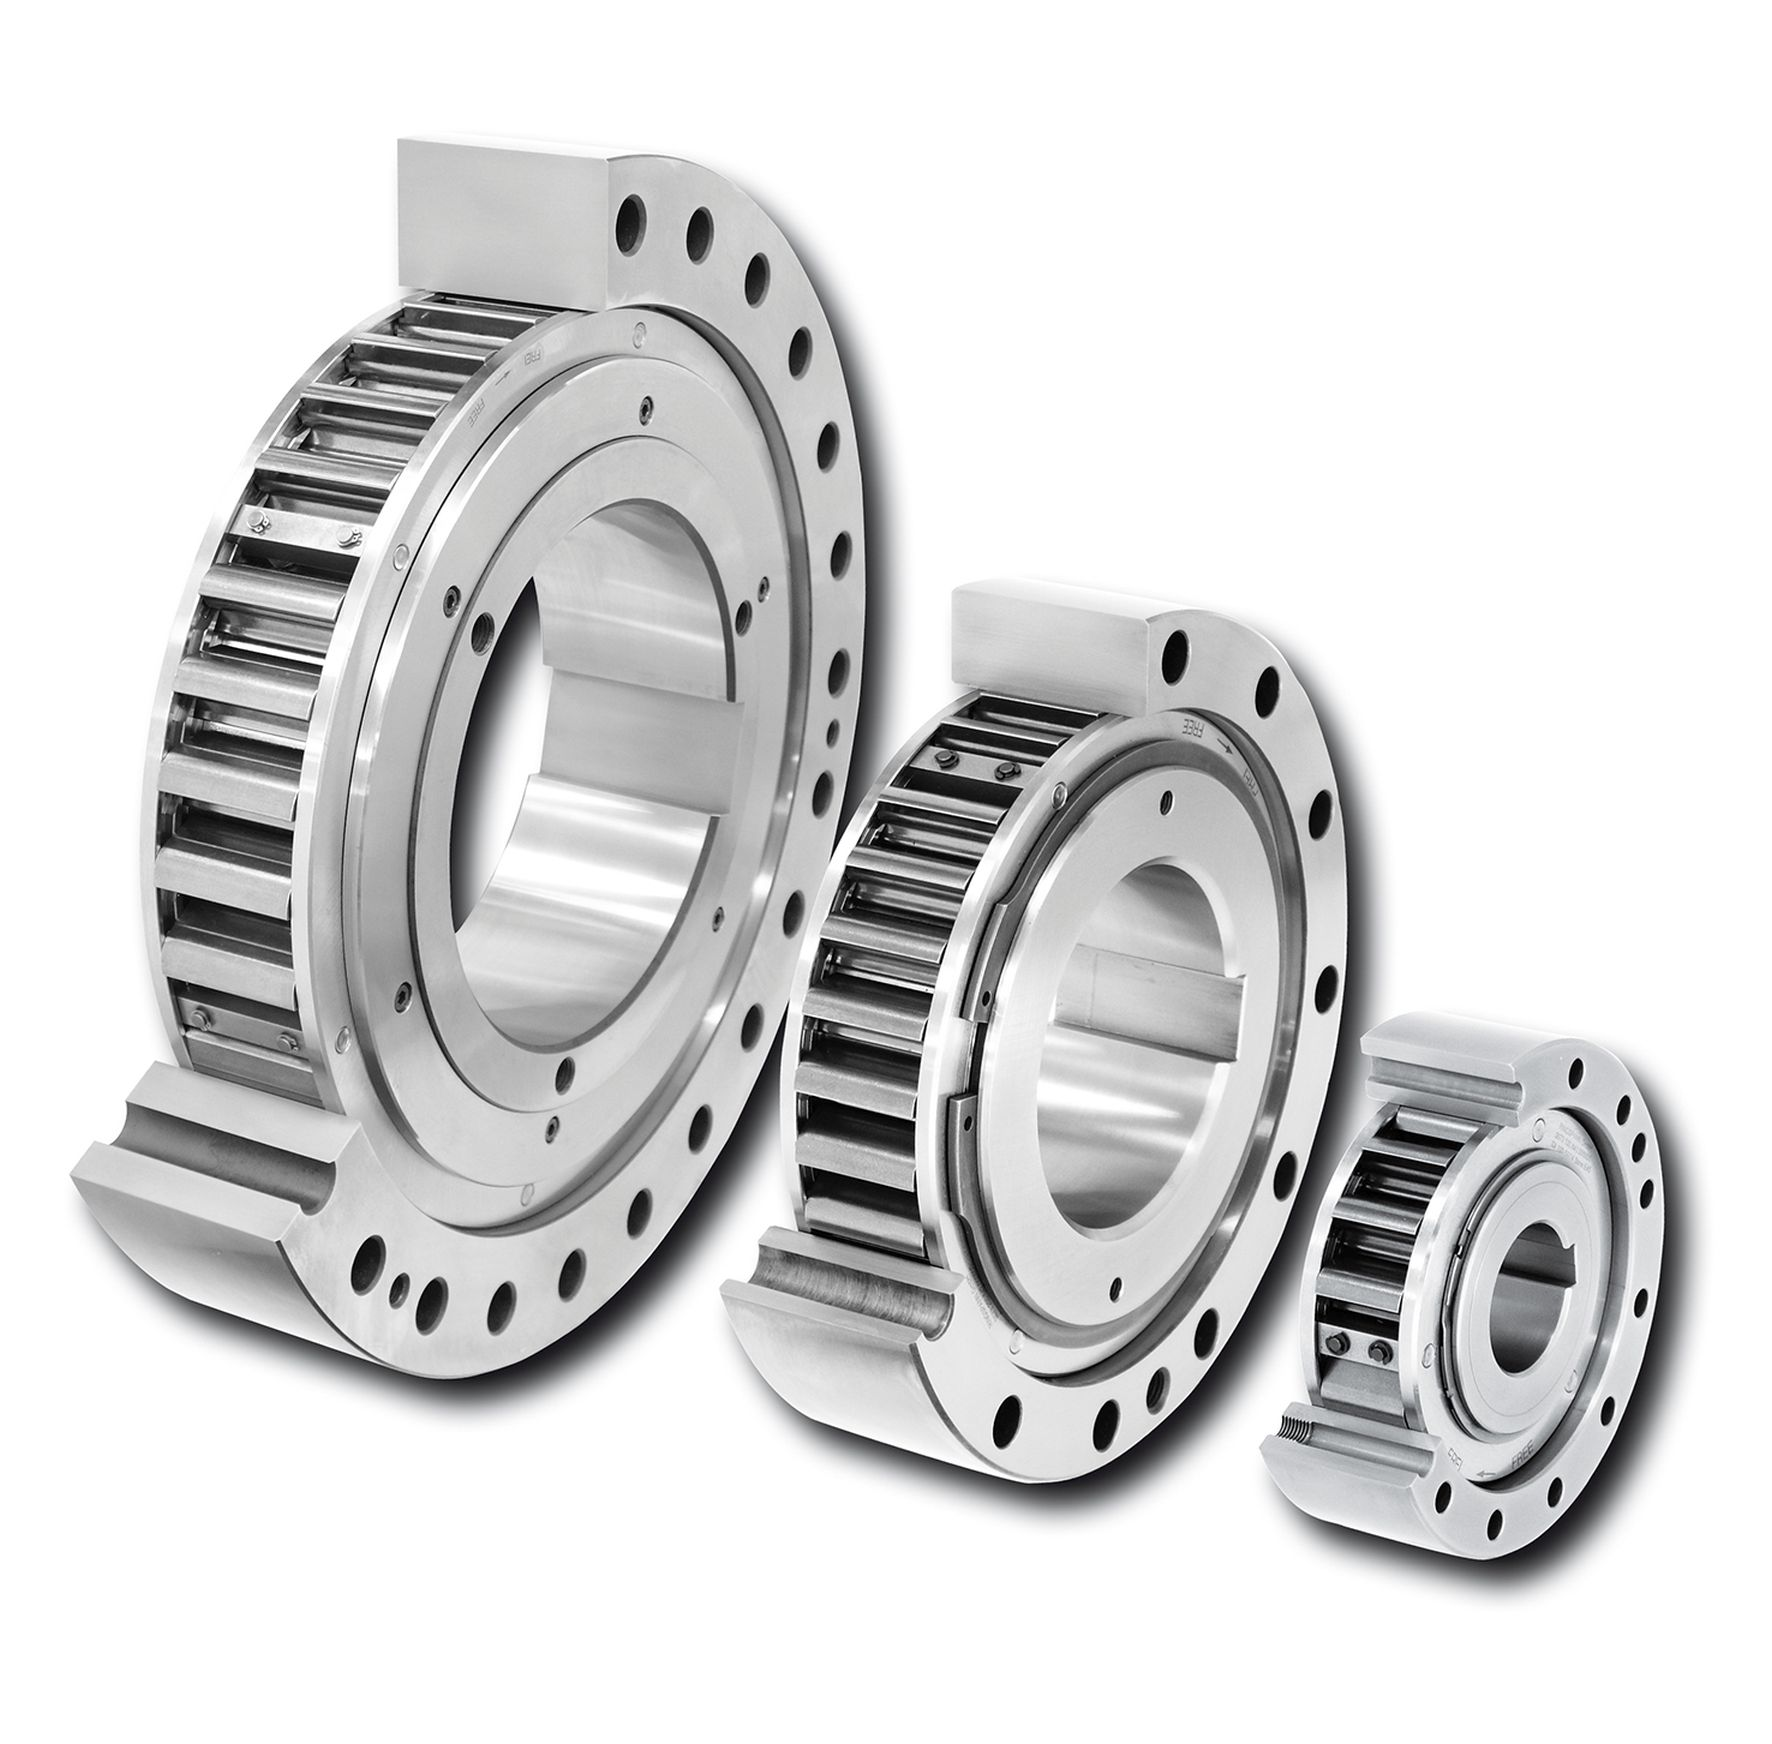 integrated freewheels of the FXM series from RINGSPANN